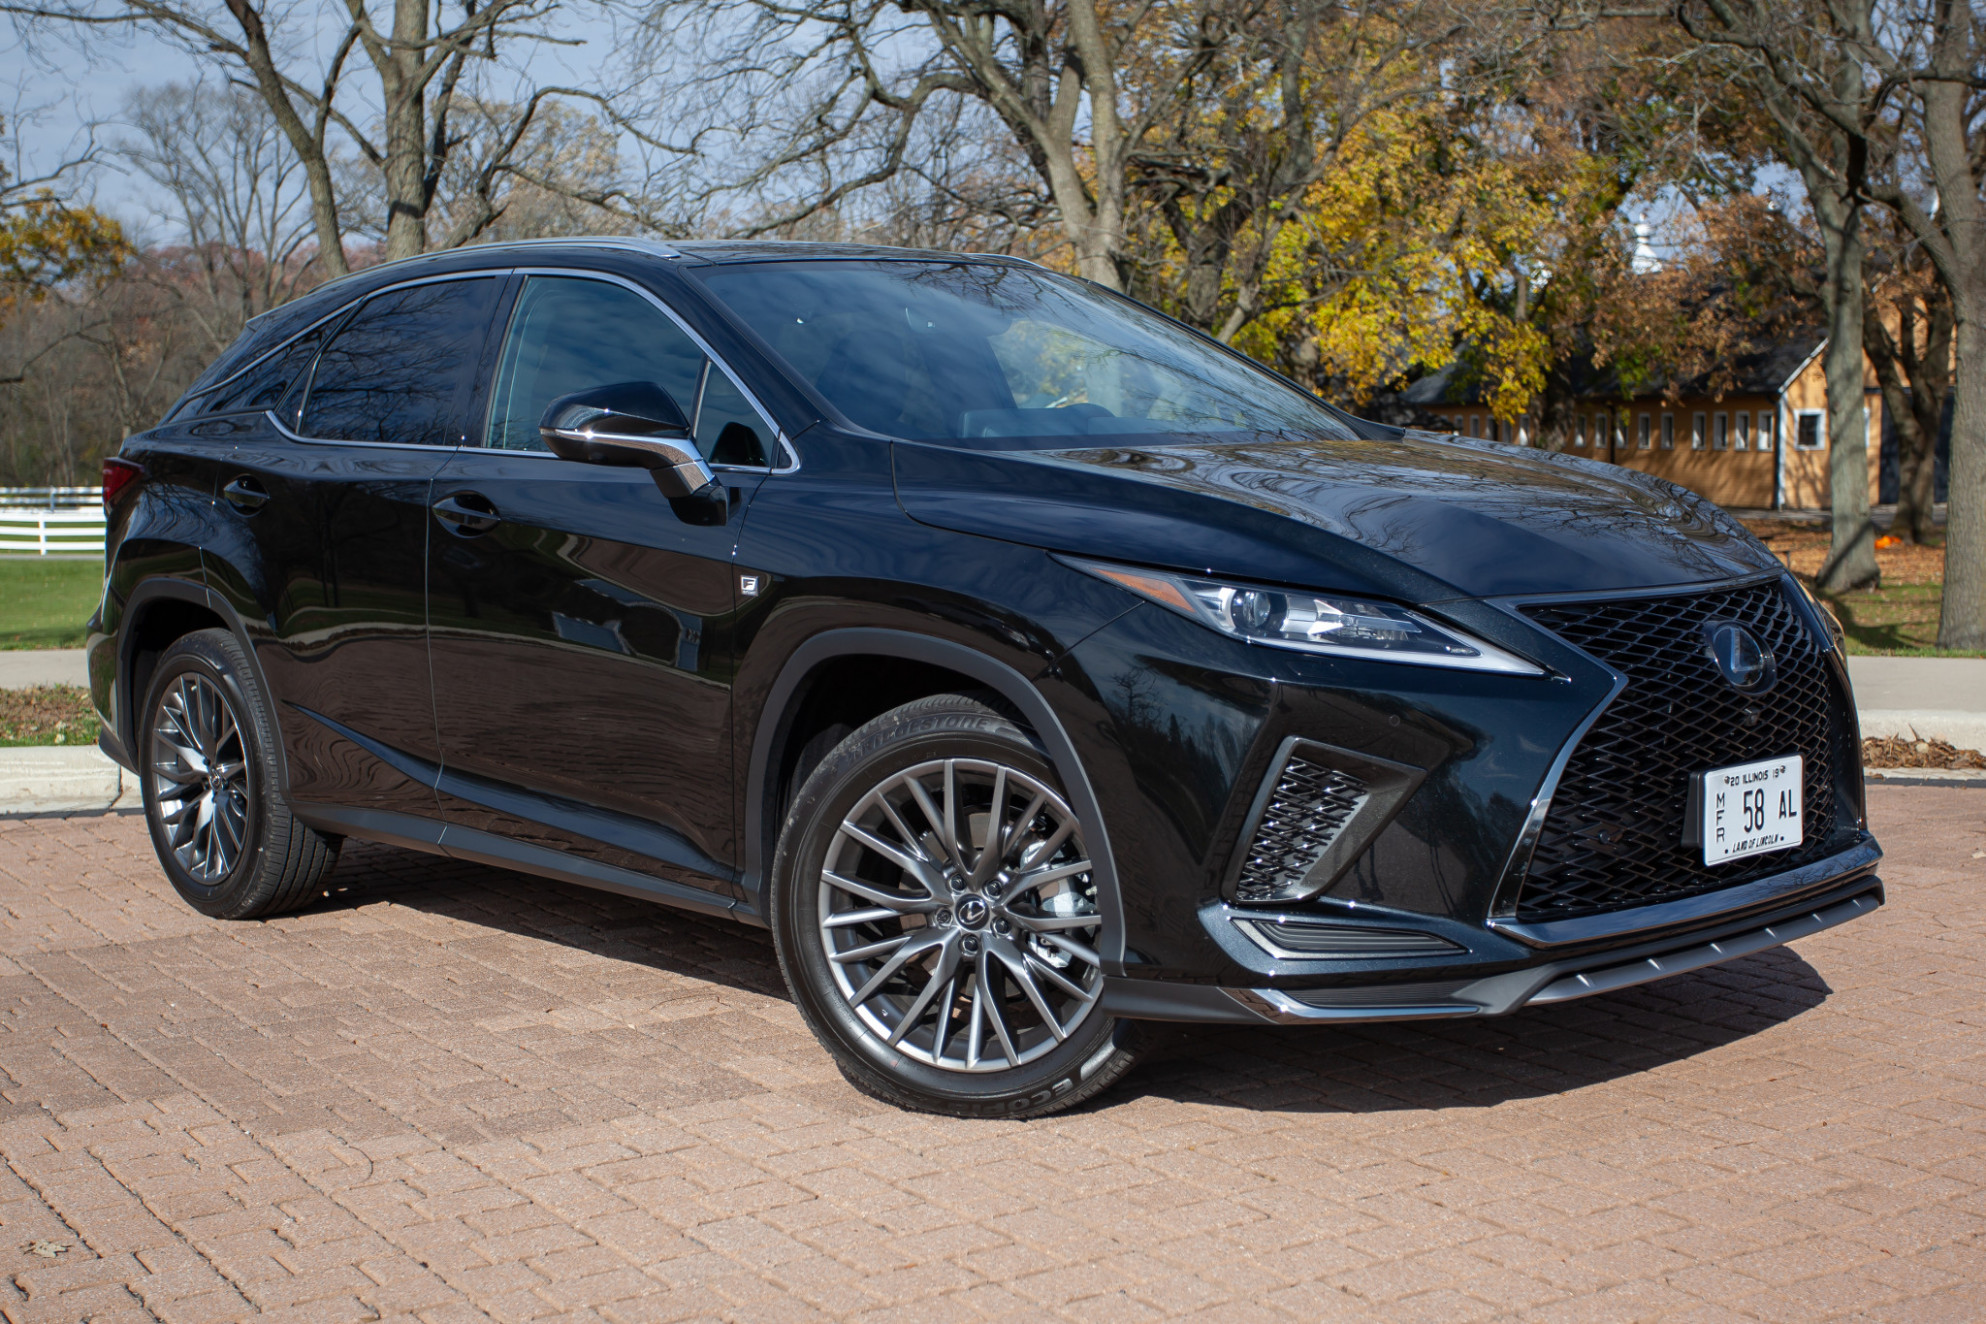 Lexus 11 RX SUV Family Brings Home Safety Awards, Falls Short on ..